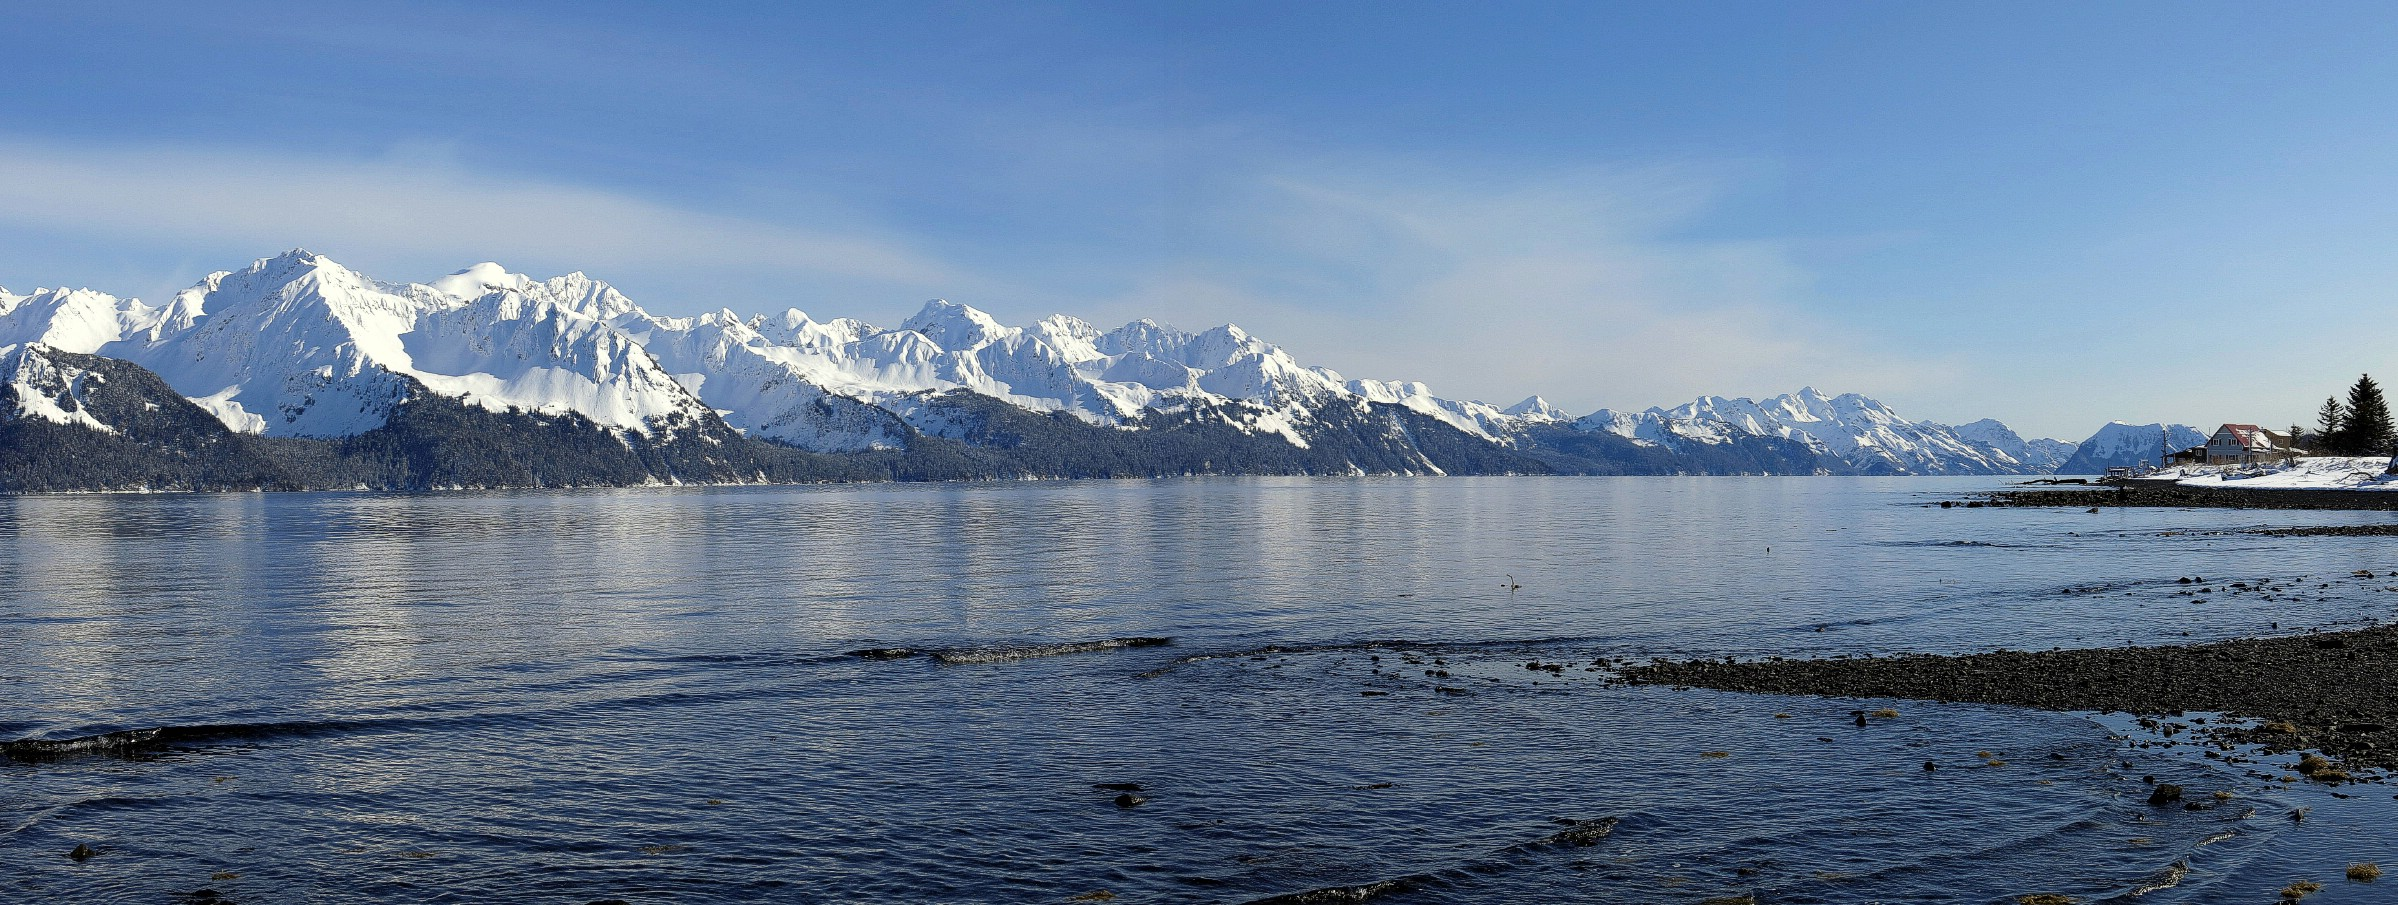 A panorama from the edge of Resurrection Bay, Lowell Point, Kenai Peninsula, Alaska, USA. March 13th 2013.